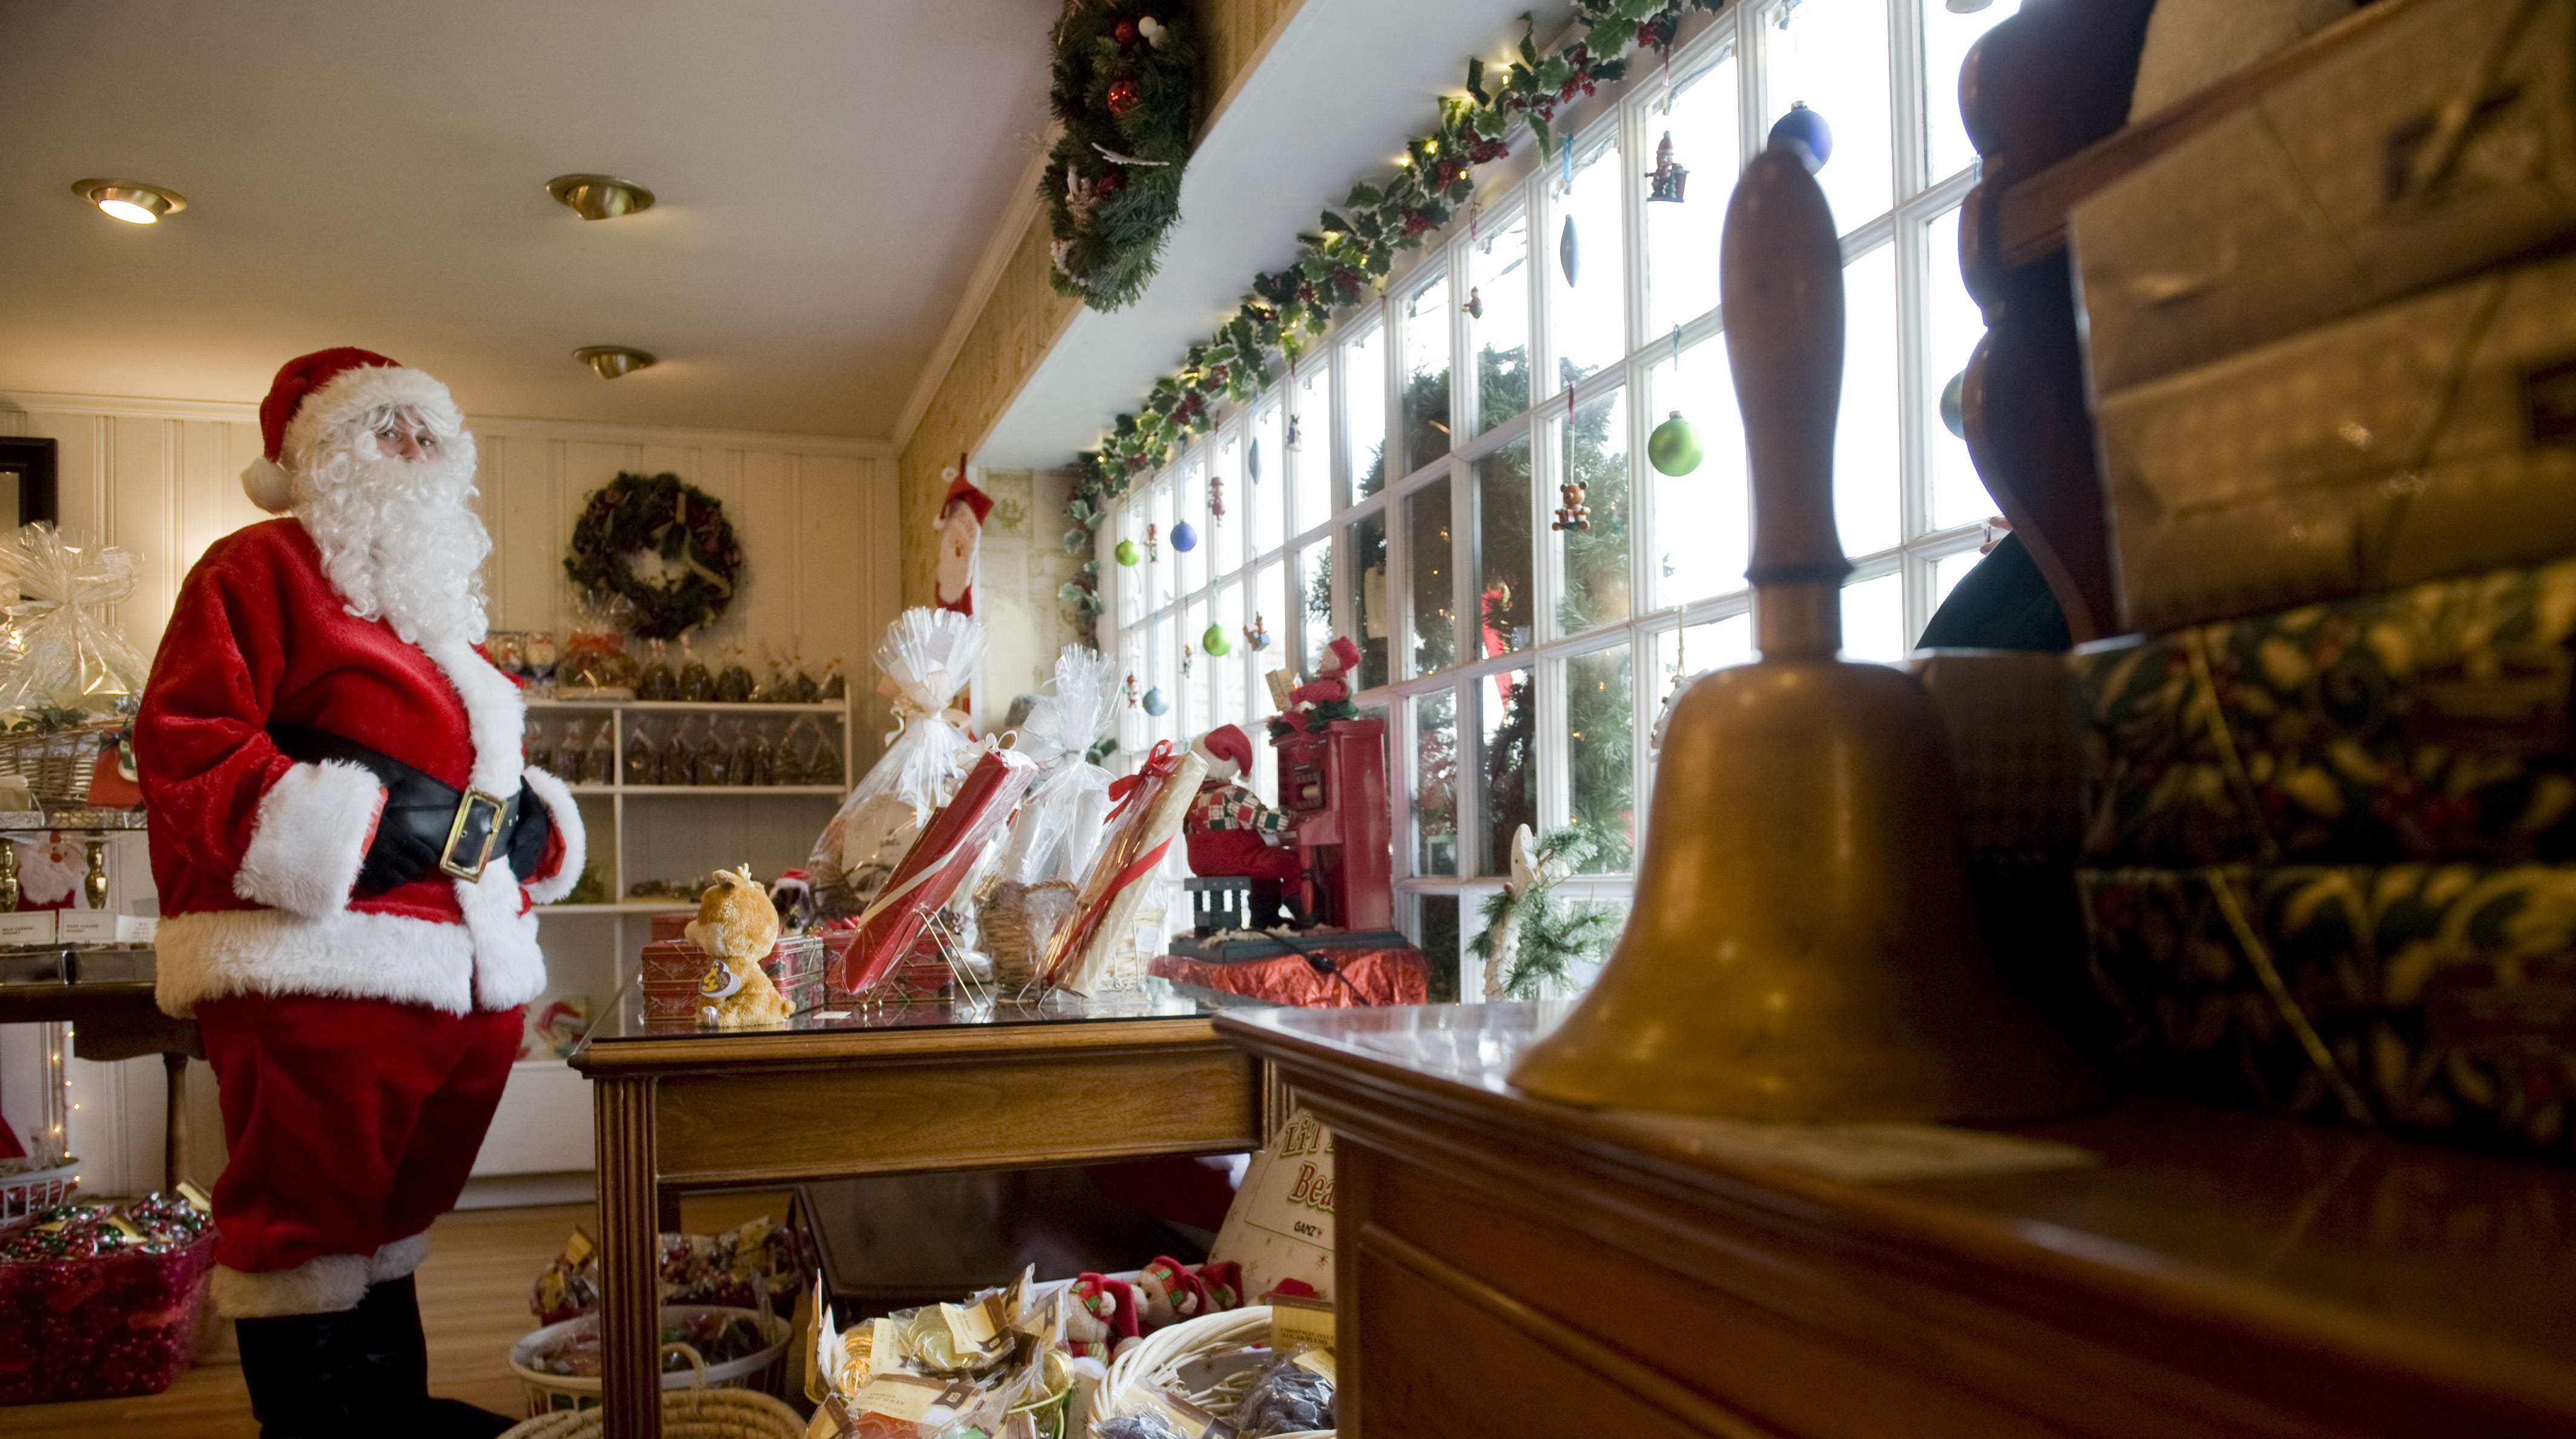 Lauren Weber dresses as Santa to greet passersby from the window of Bayard's Chocolate House in Cherry Hill in 2012.